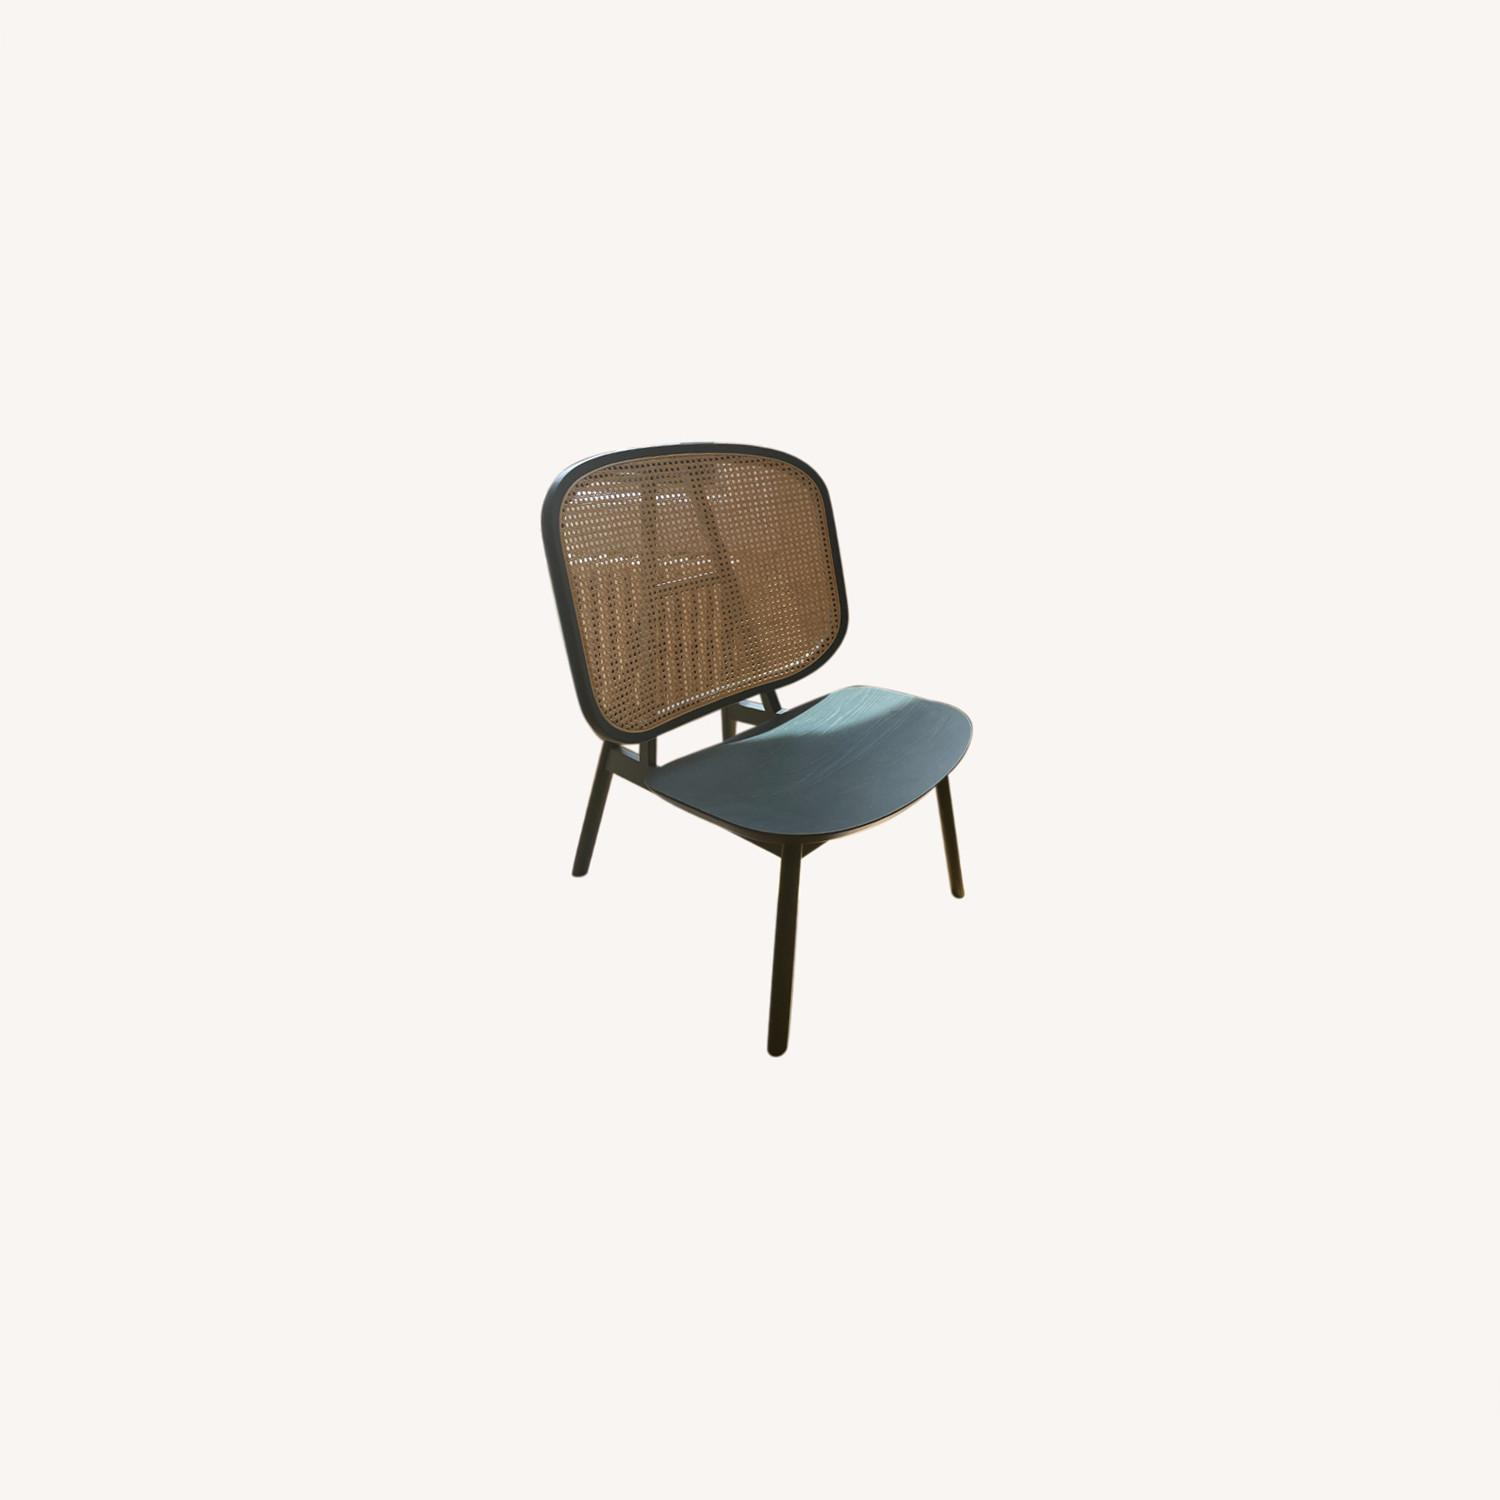 Industry West Blue Caned Accent Chair - image-0